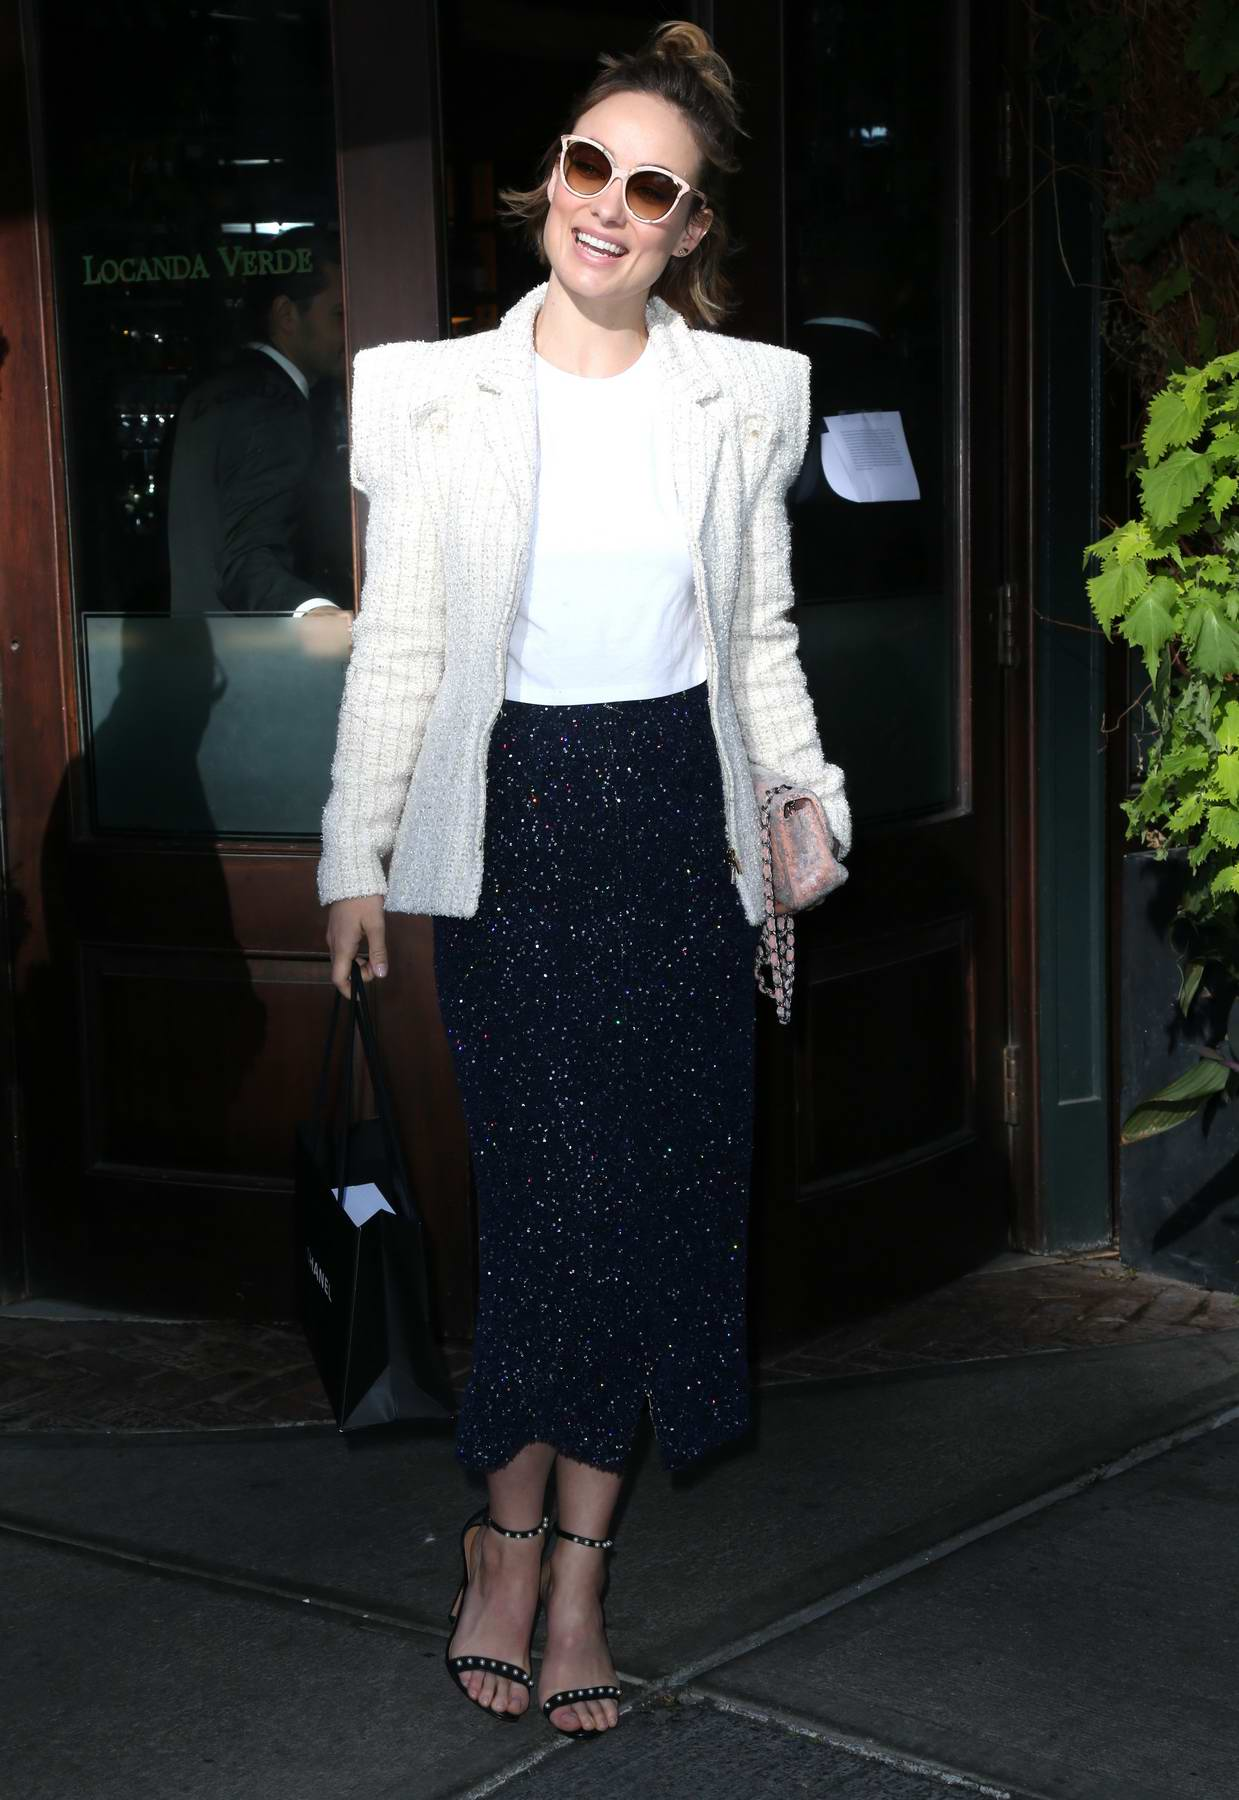 Olivia Wilde at Through Her Lens: The Tribeca Chanel Women's Filmmaker Program Luncheon in New York City